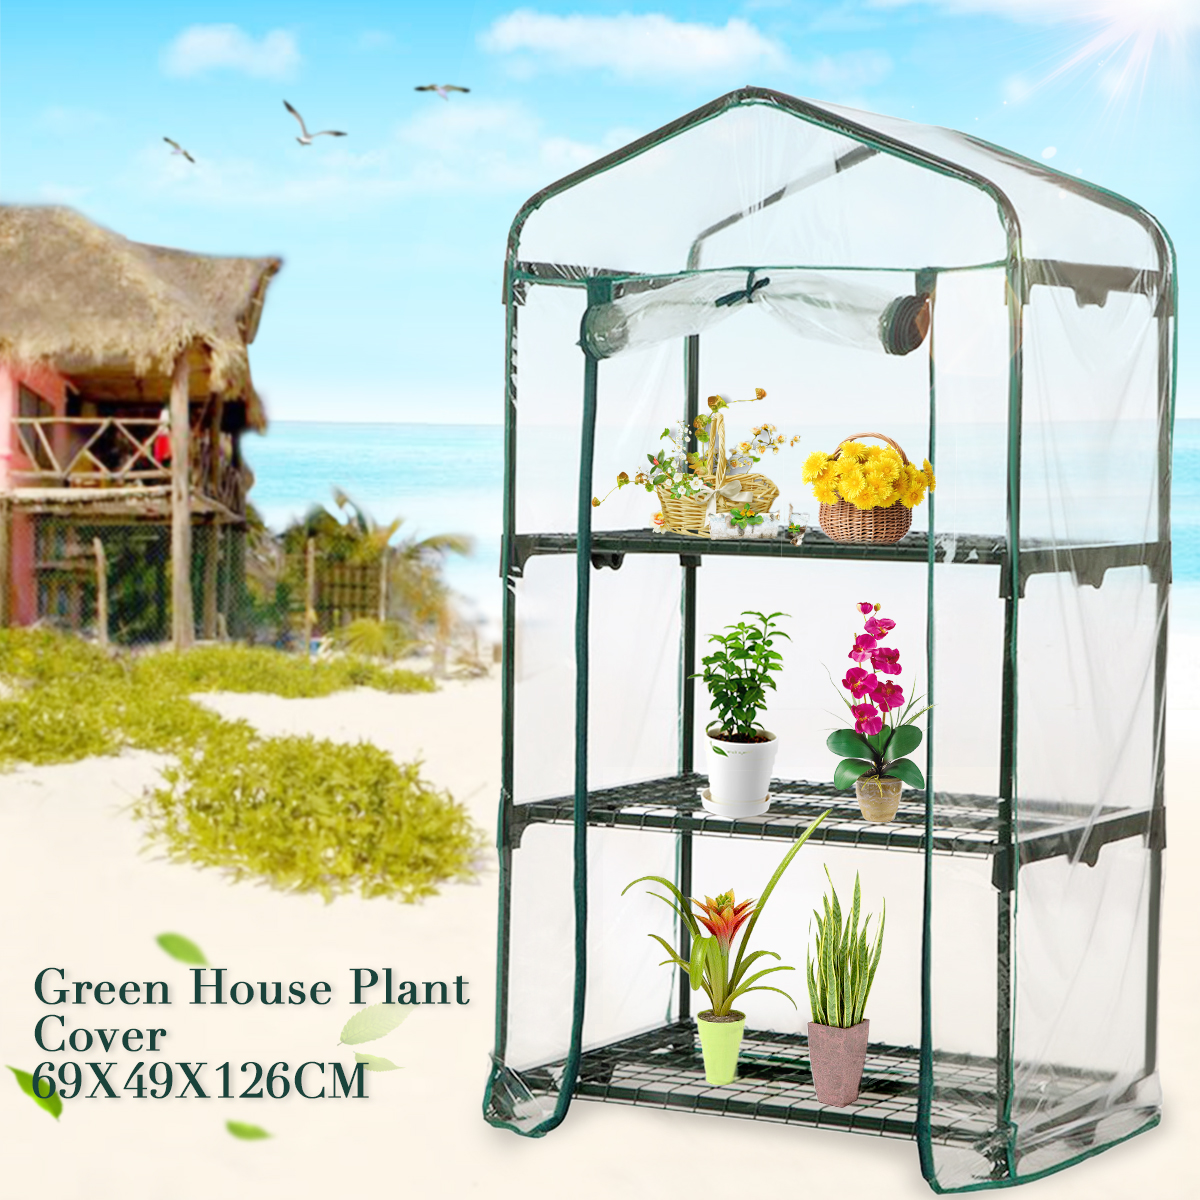 69x49x126cm Apex Roof 3-Tiers Garden Greenhouse Hot Plant House Shelf Shed Clear PVC Cover